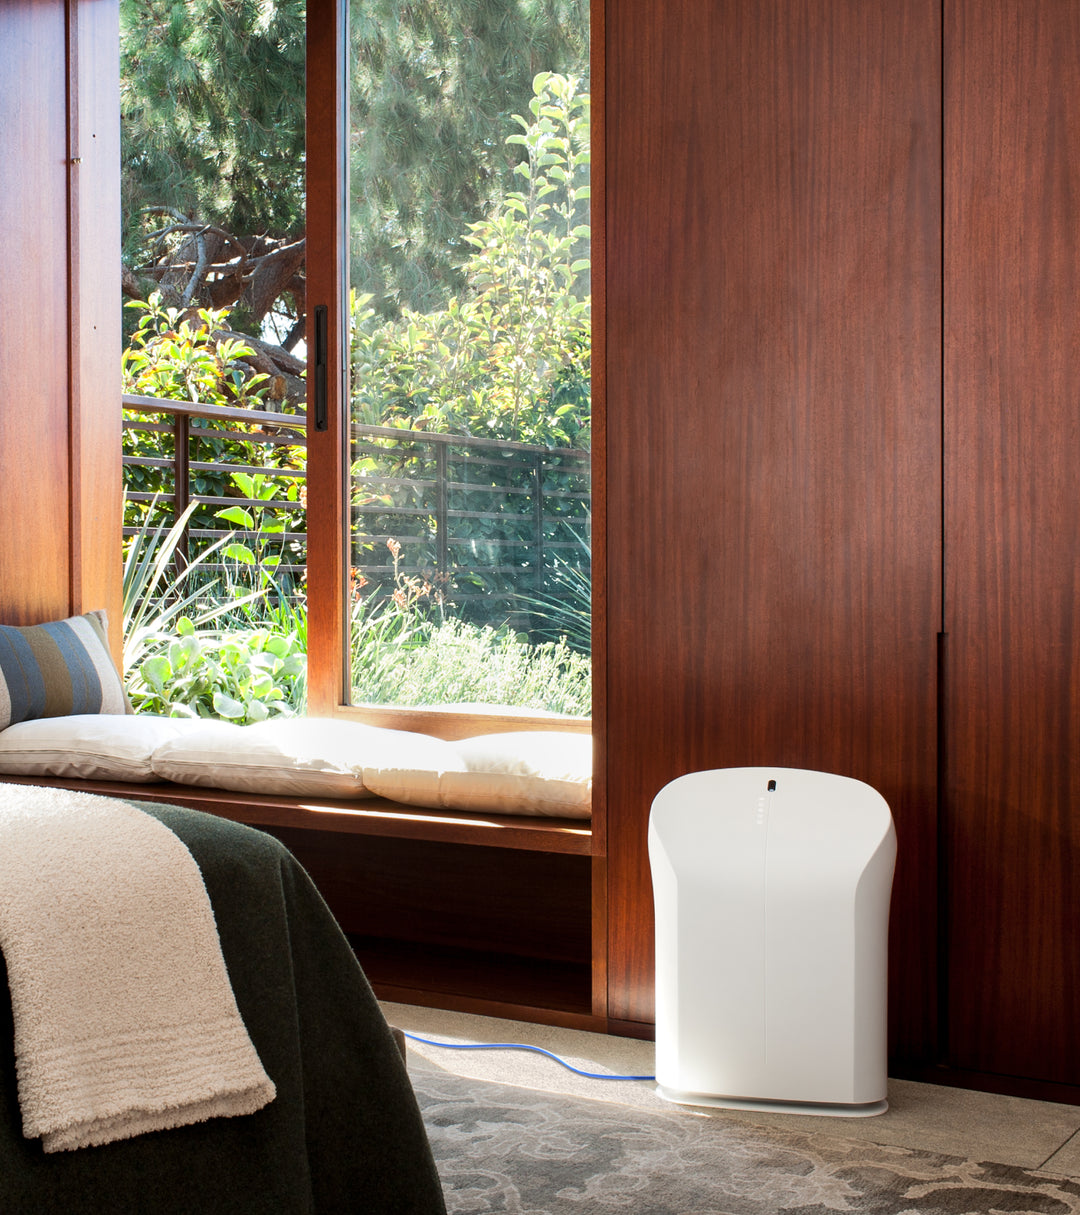 BioGS 2.0 air purifier sitting by the bed